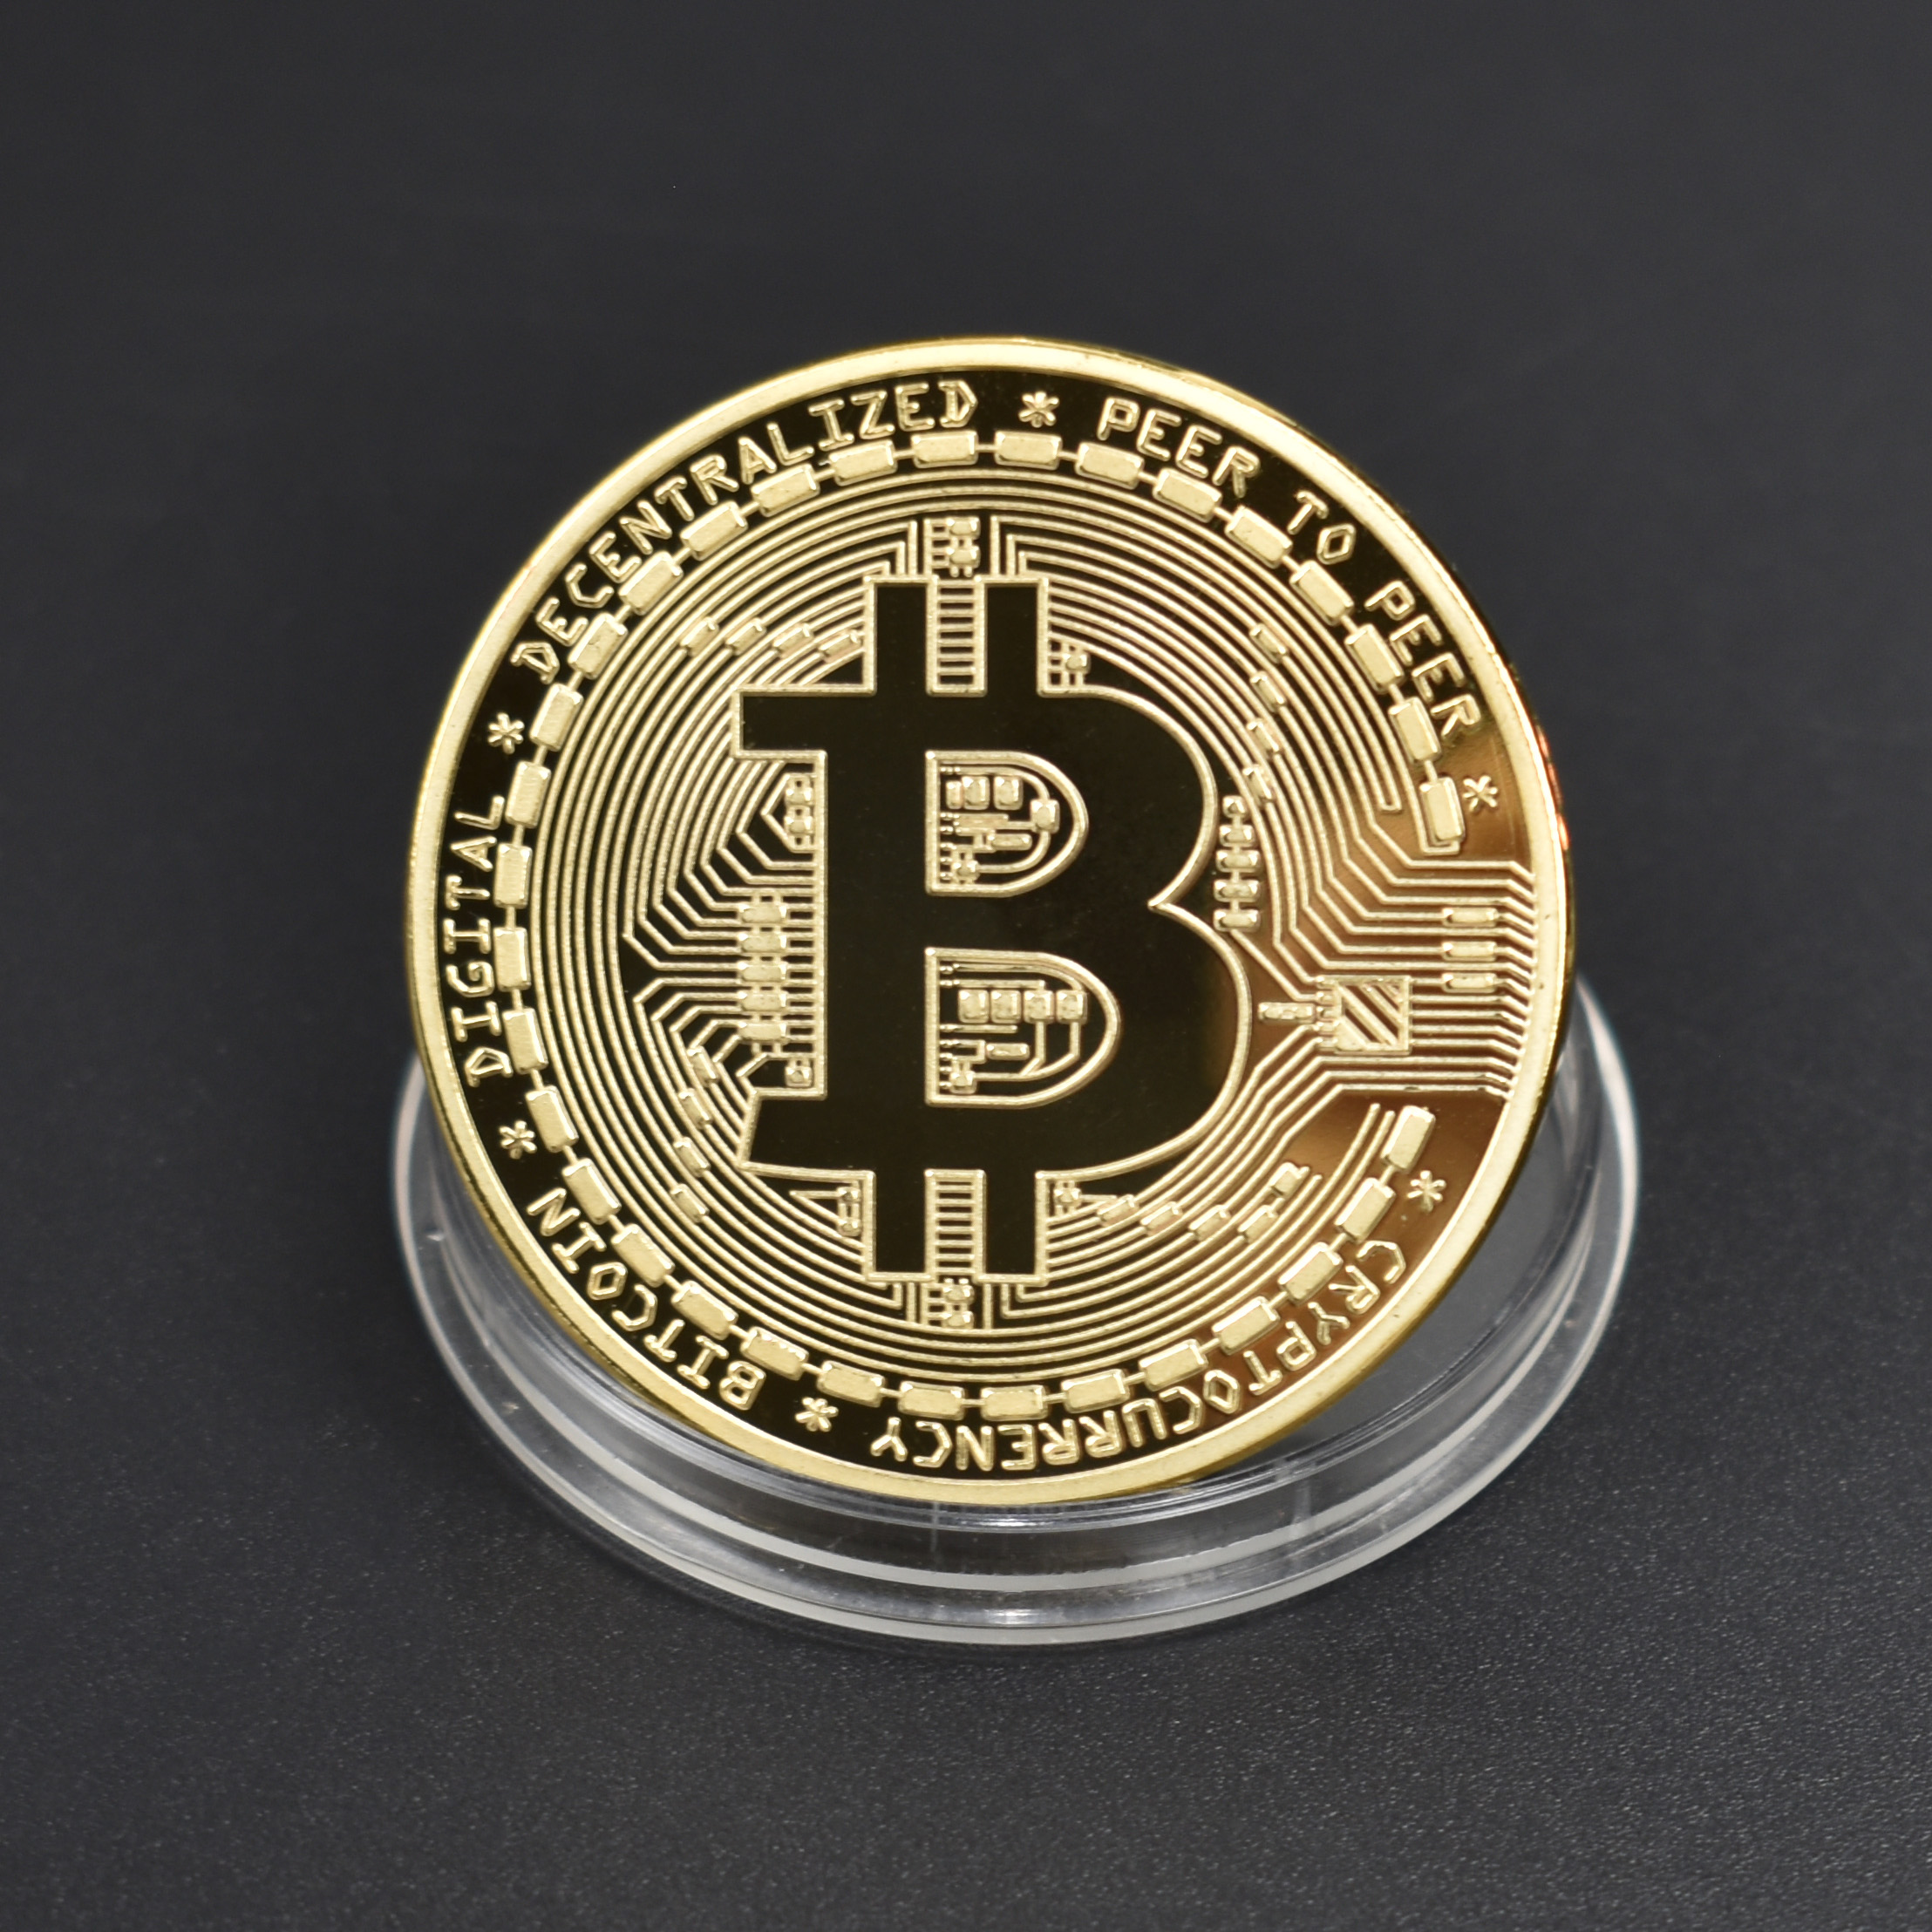 Bit Coin gold  Btc coin cions Litecoin Ripple Ethereum Cryptocurrency Metal Commemoration Gift Physical antique imitation-4